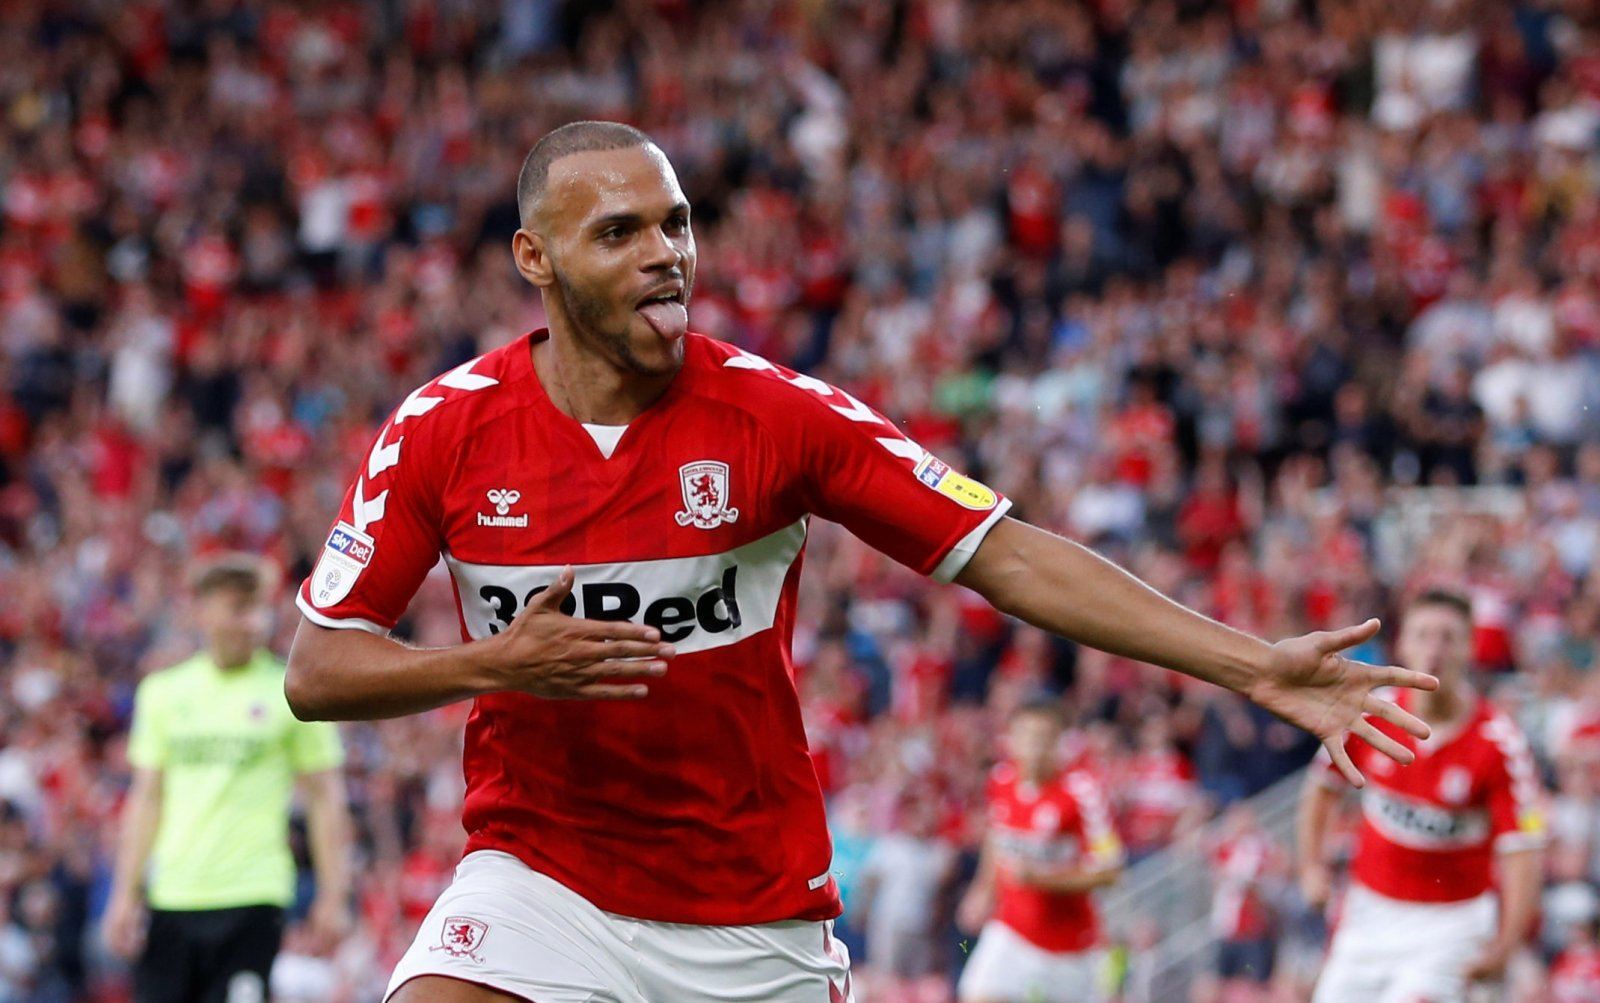 Middlesbrough fans are glad to see the back of Martin Braithwaite